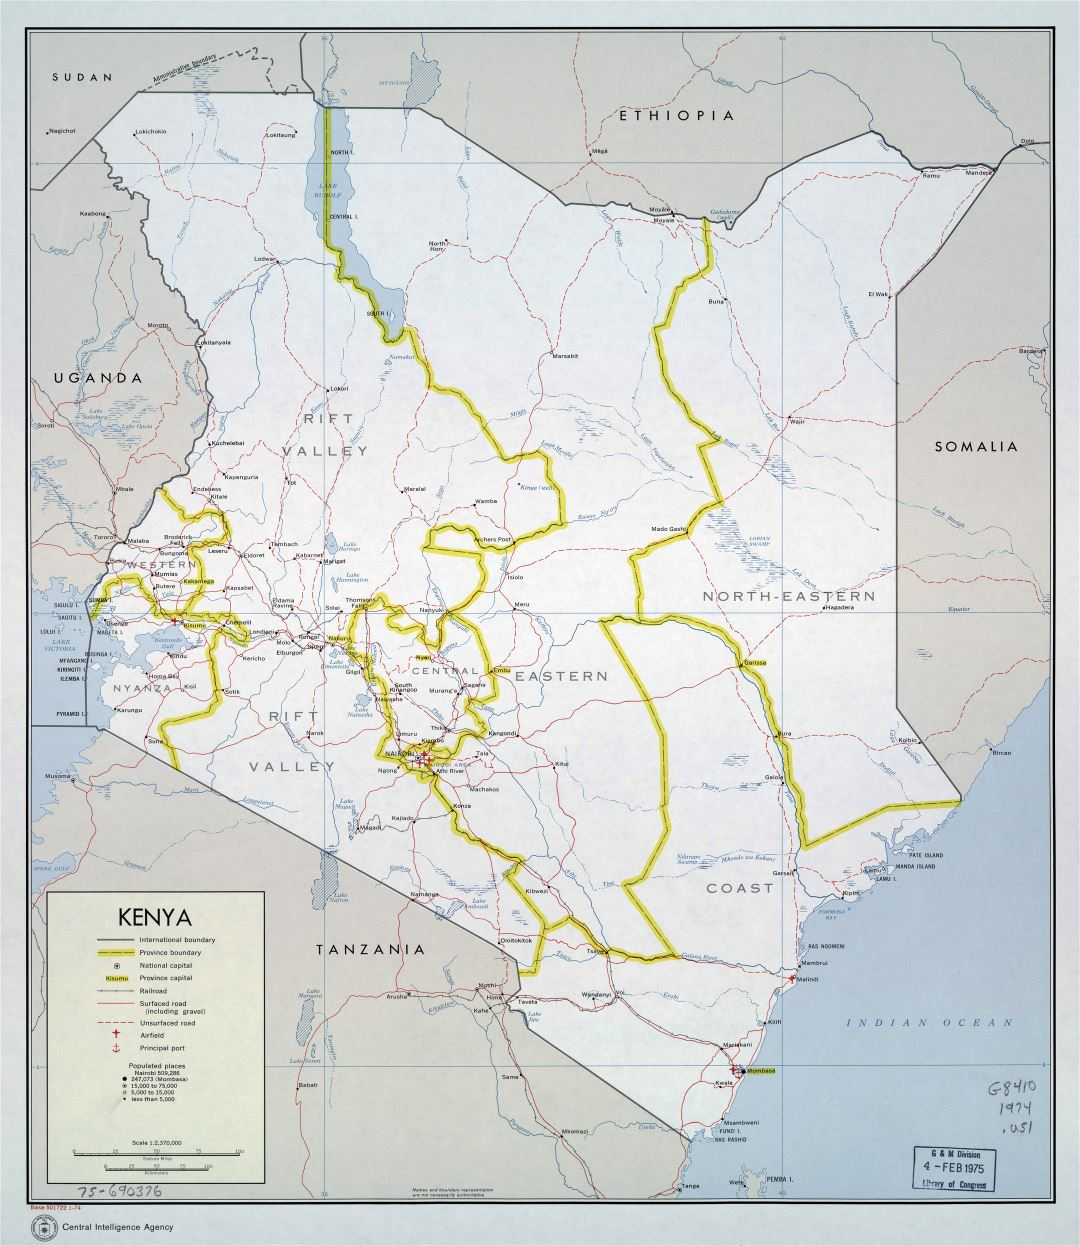 Large detailed political and administrative map of Kenya with roads, railroads, cities, ports and airports - 1974